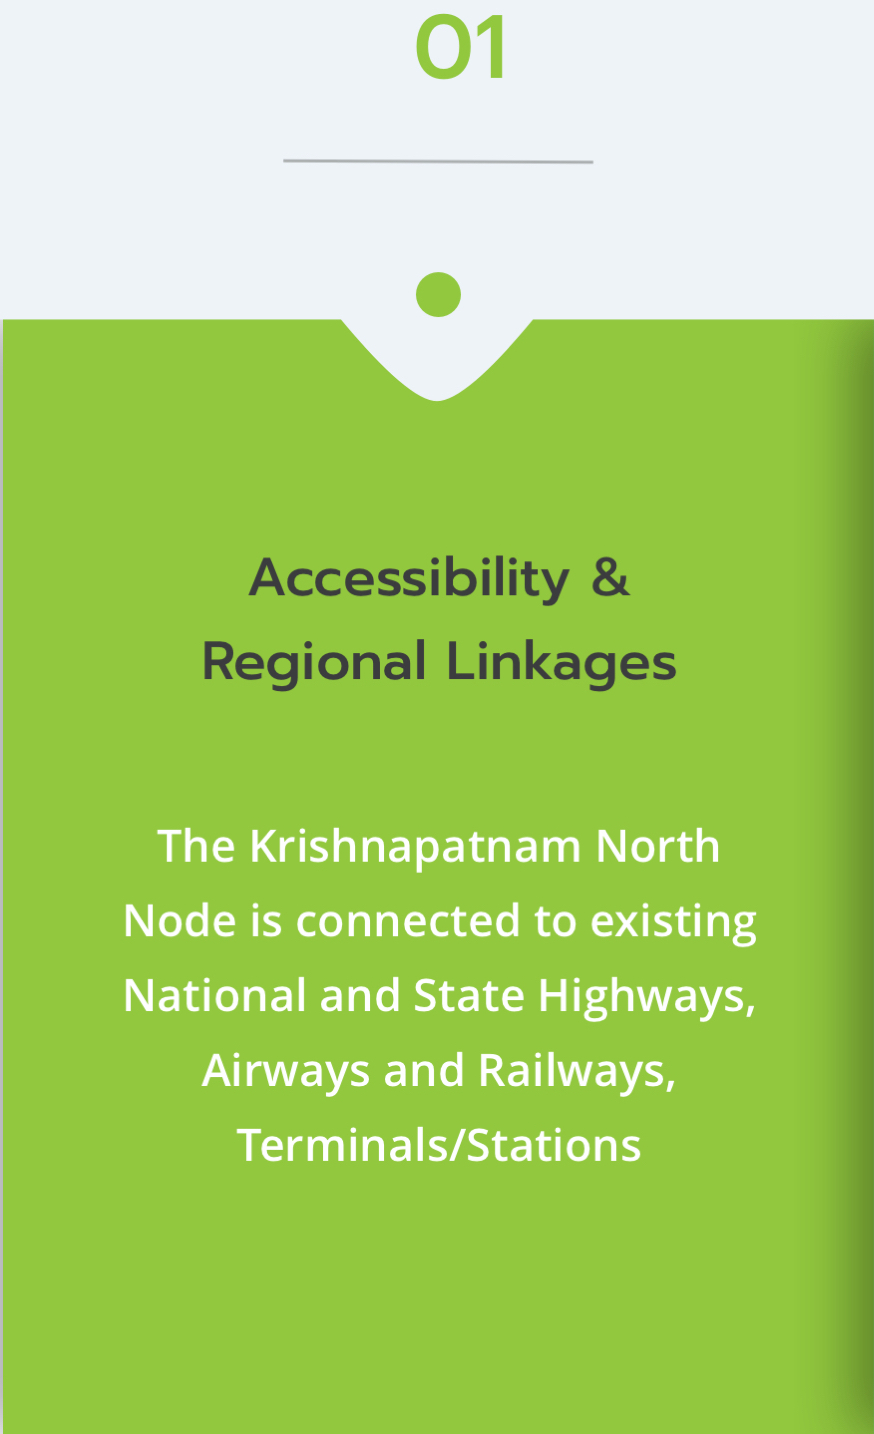 Accessibility & Regional Linkages